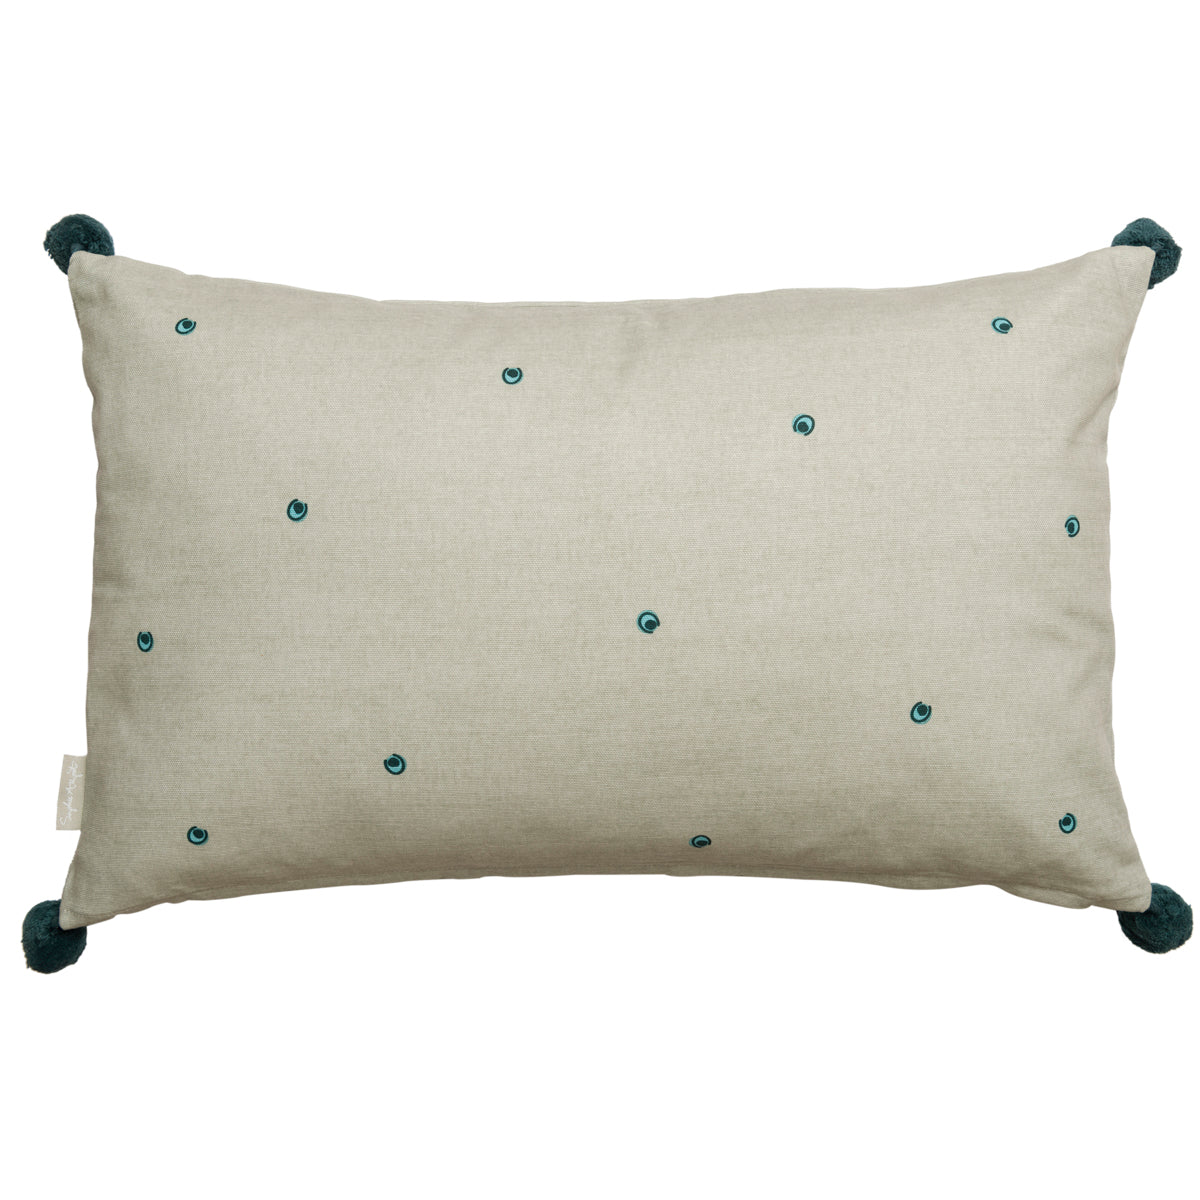 Decorative Peacocks Embroidered Cushion by Sophie Allport